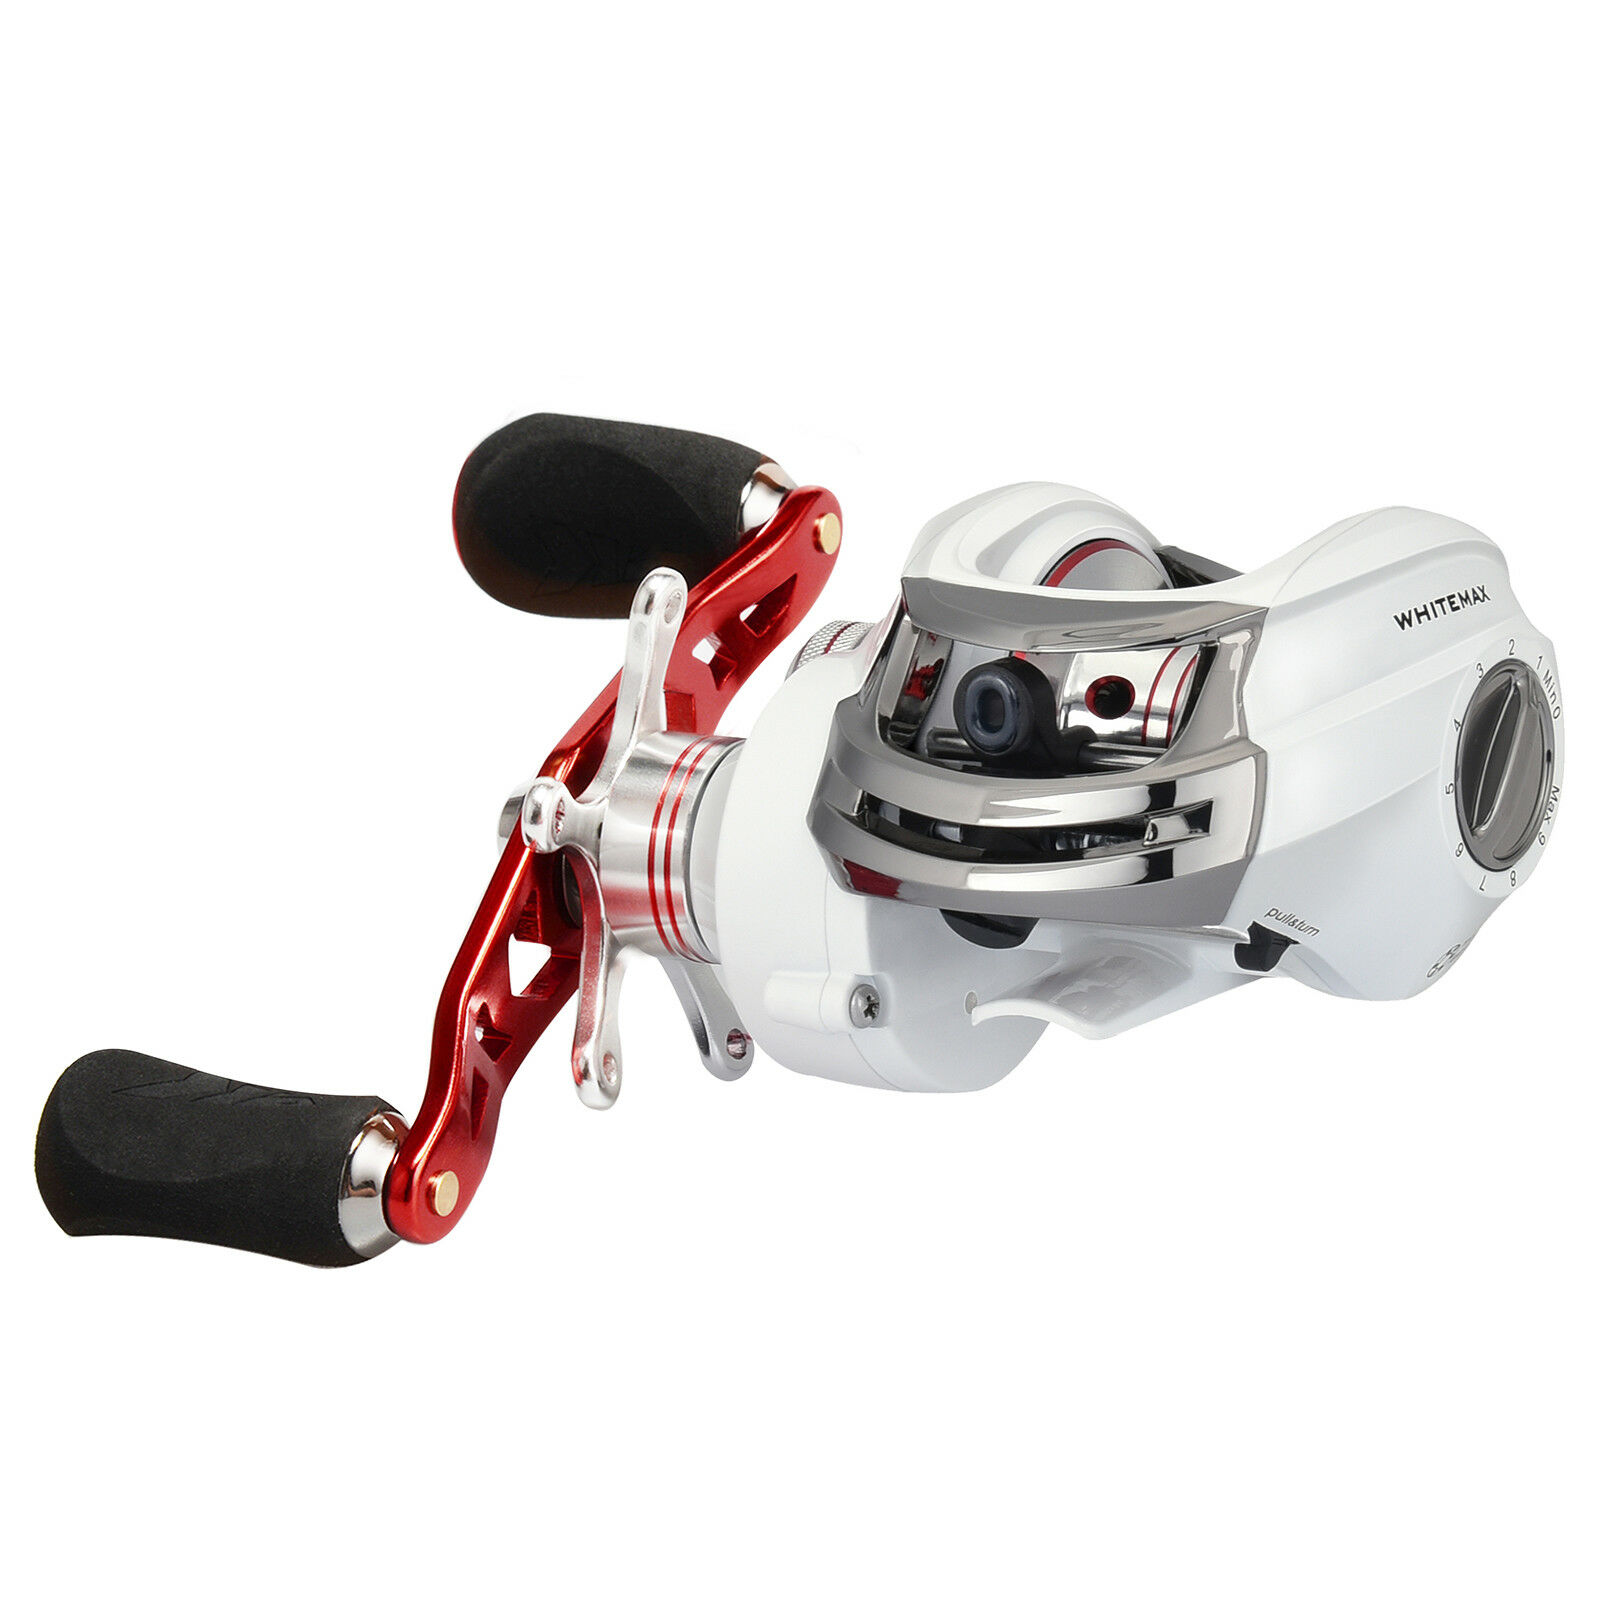 KastKing WhiteMax  Perfect Low Profile Reel - 5.3 1 Gear Ratio Baitcasting Reel  all in high quality and low price